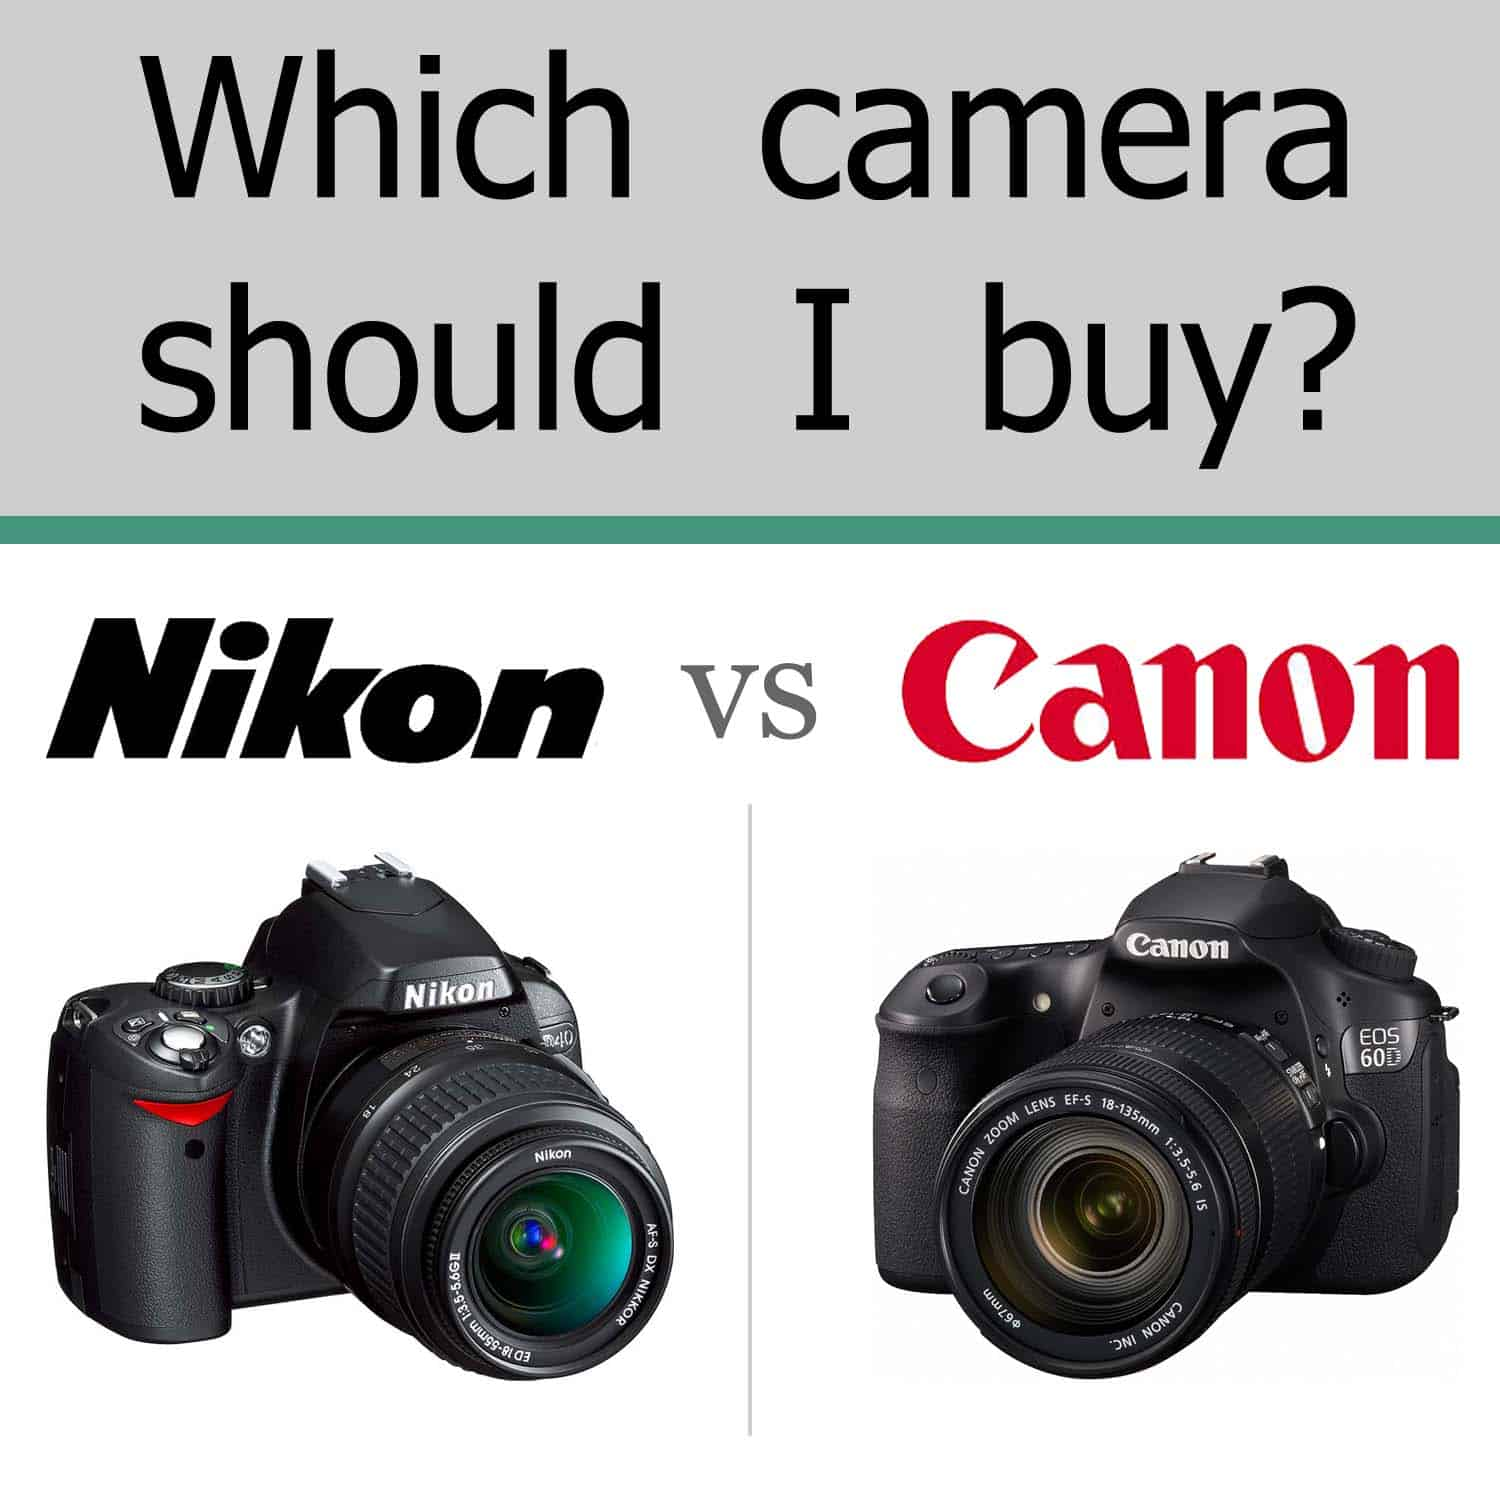 Which camera company is the best